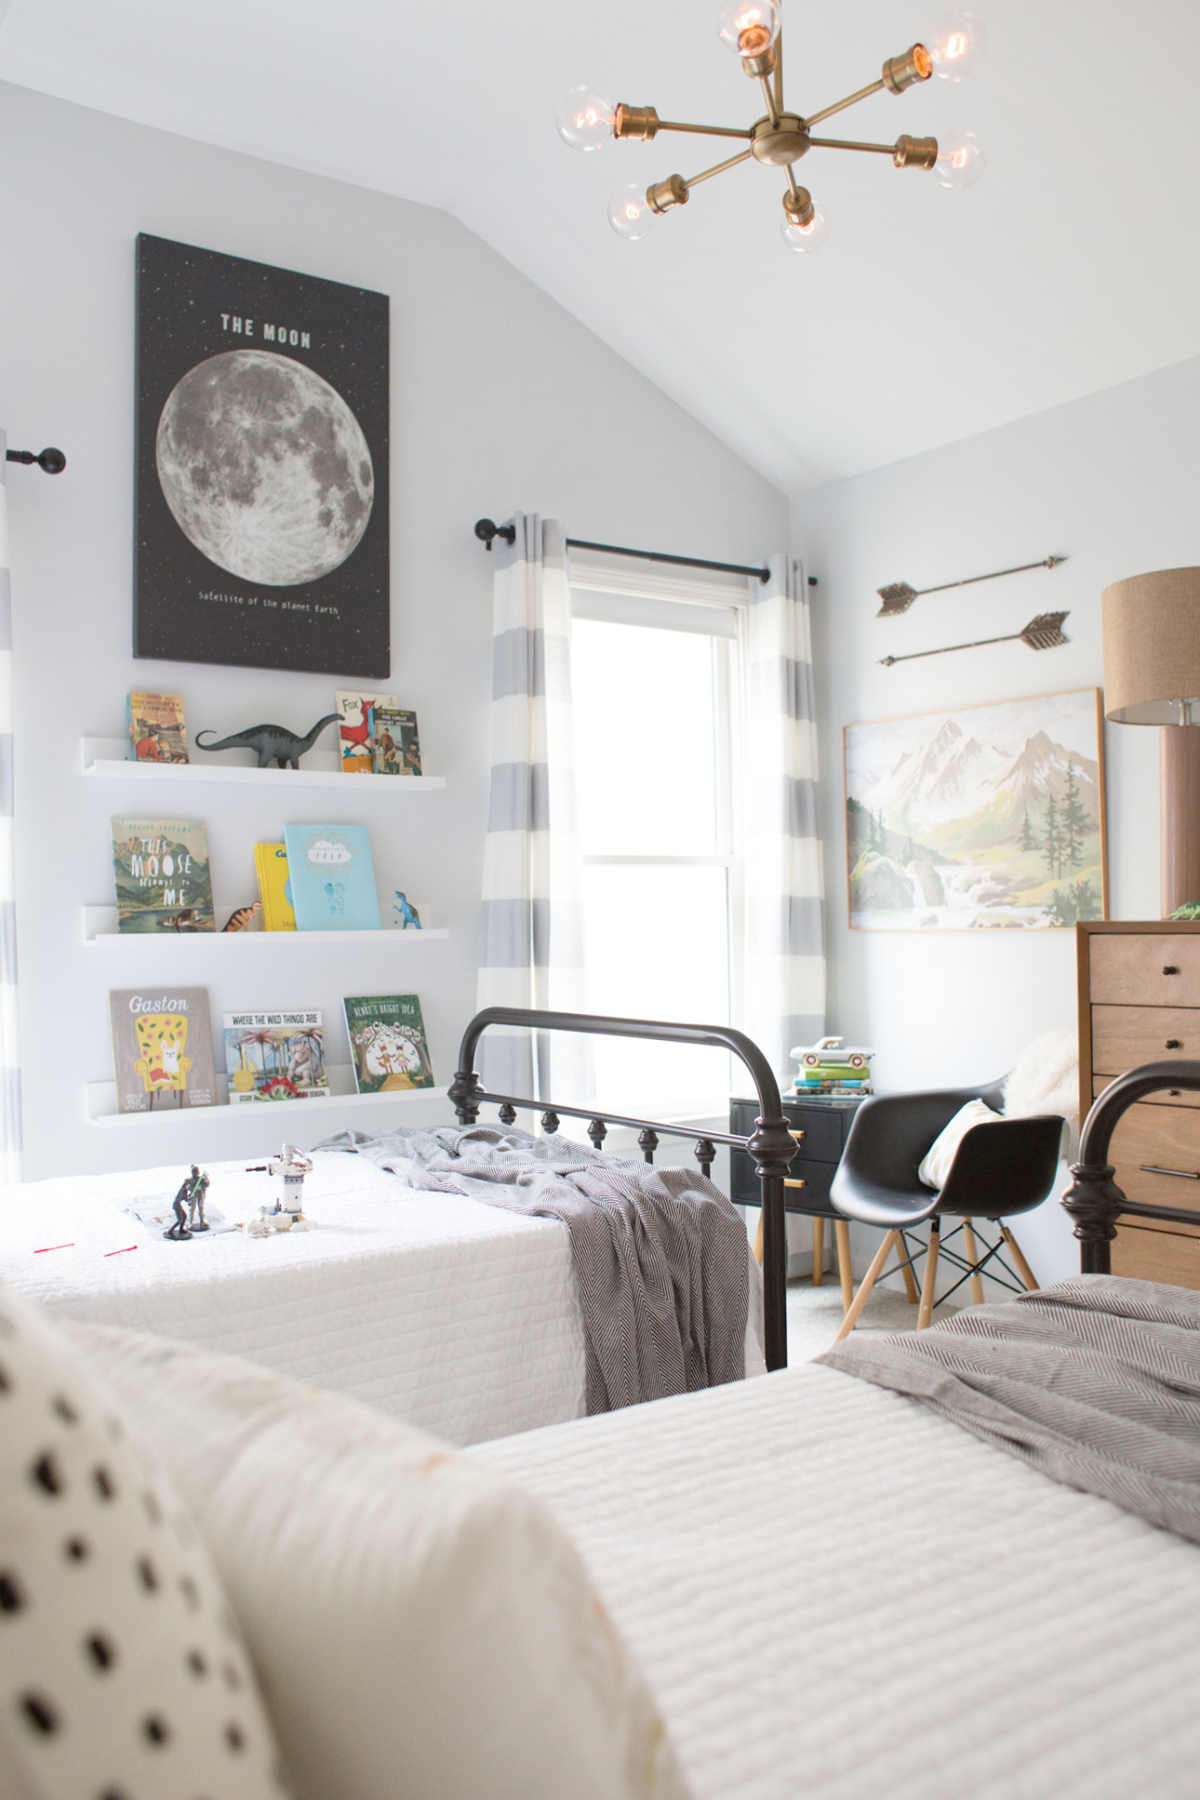 Star Wars Ideas For A Boy Room Lay Baby Lay